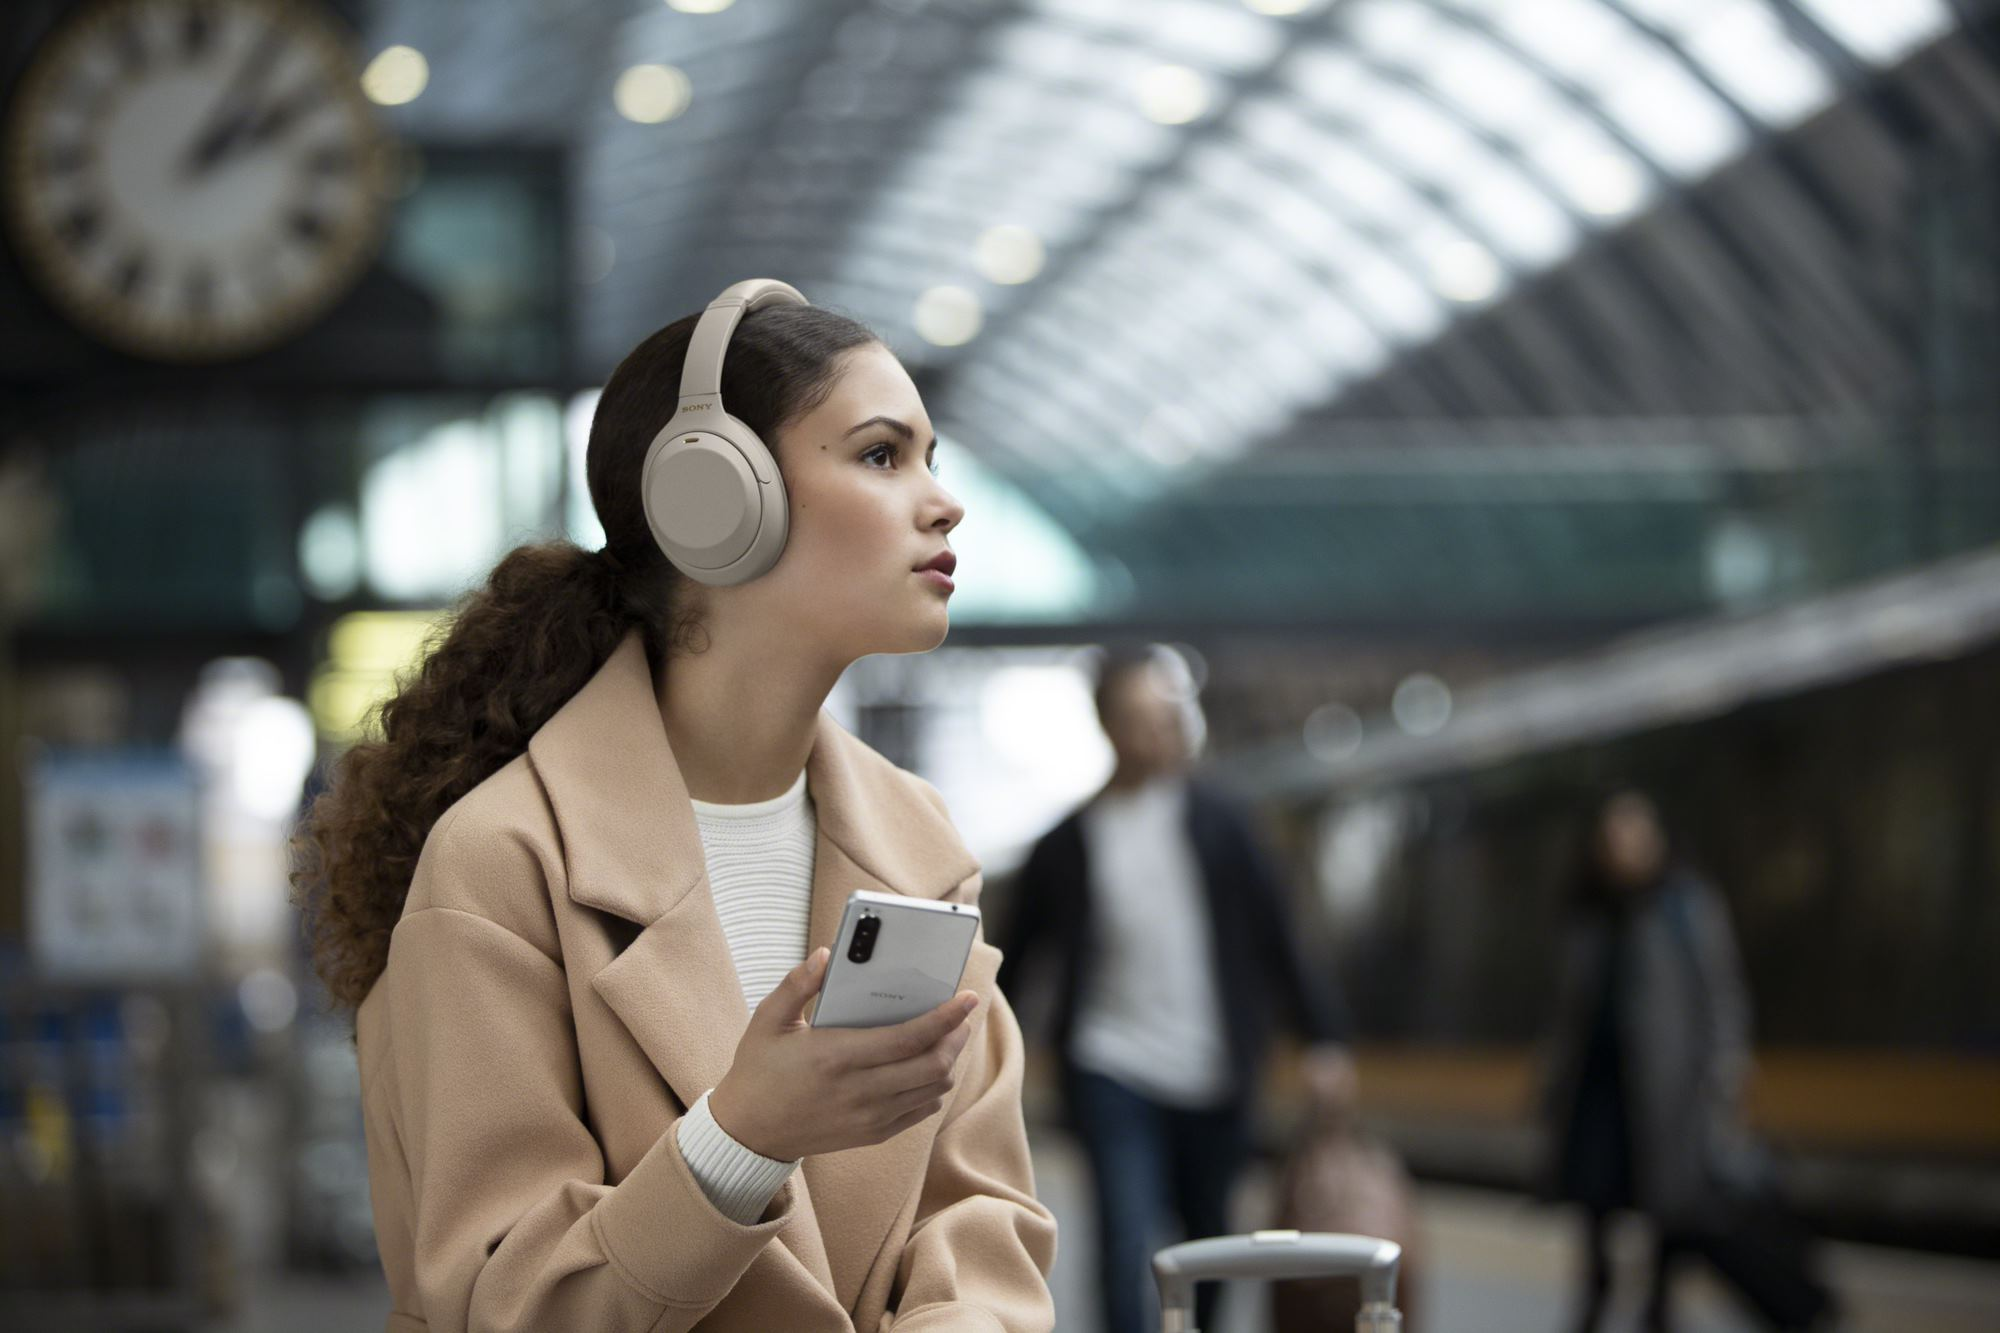 The Best Just Got Better – Sony Middle East & Africa Announces WH-1000XM4 Industry-Leading Wireless Noise Cancelling